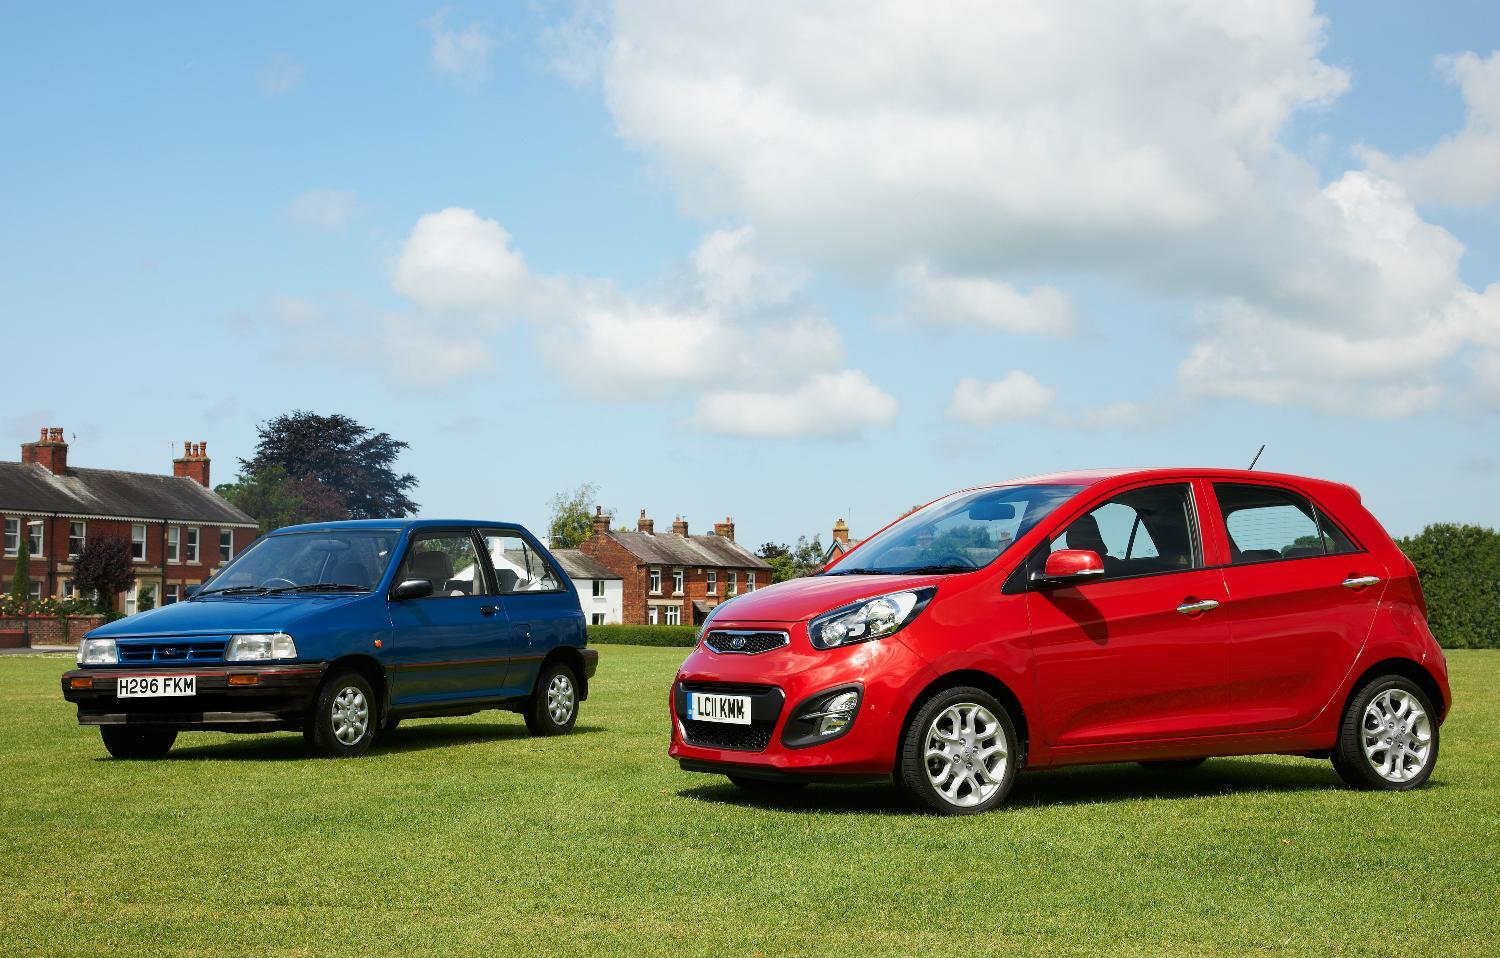 Kia Pride and Picanto